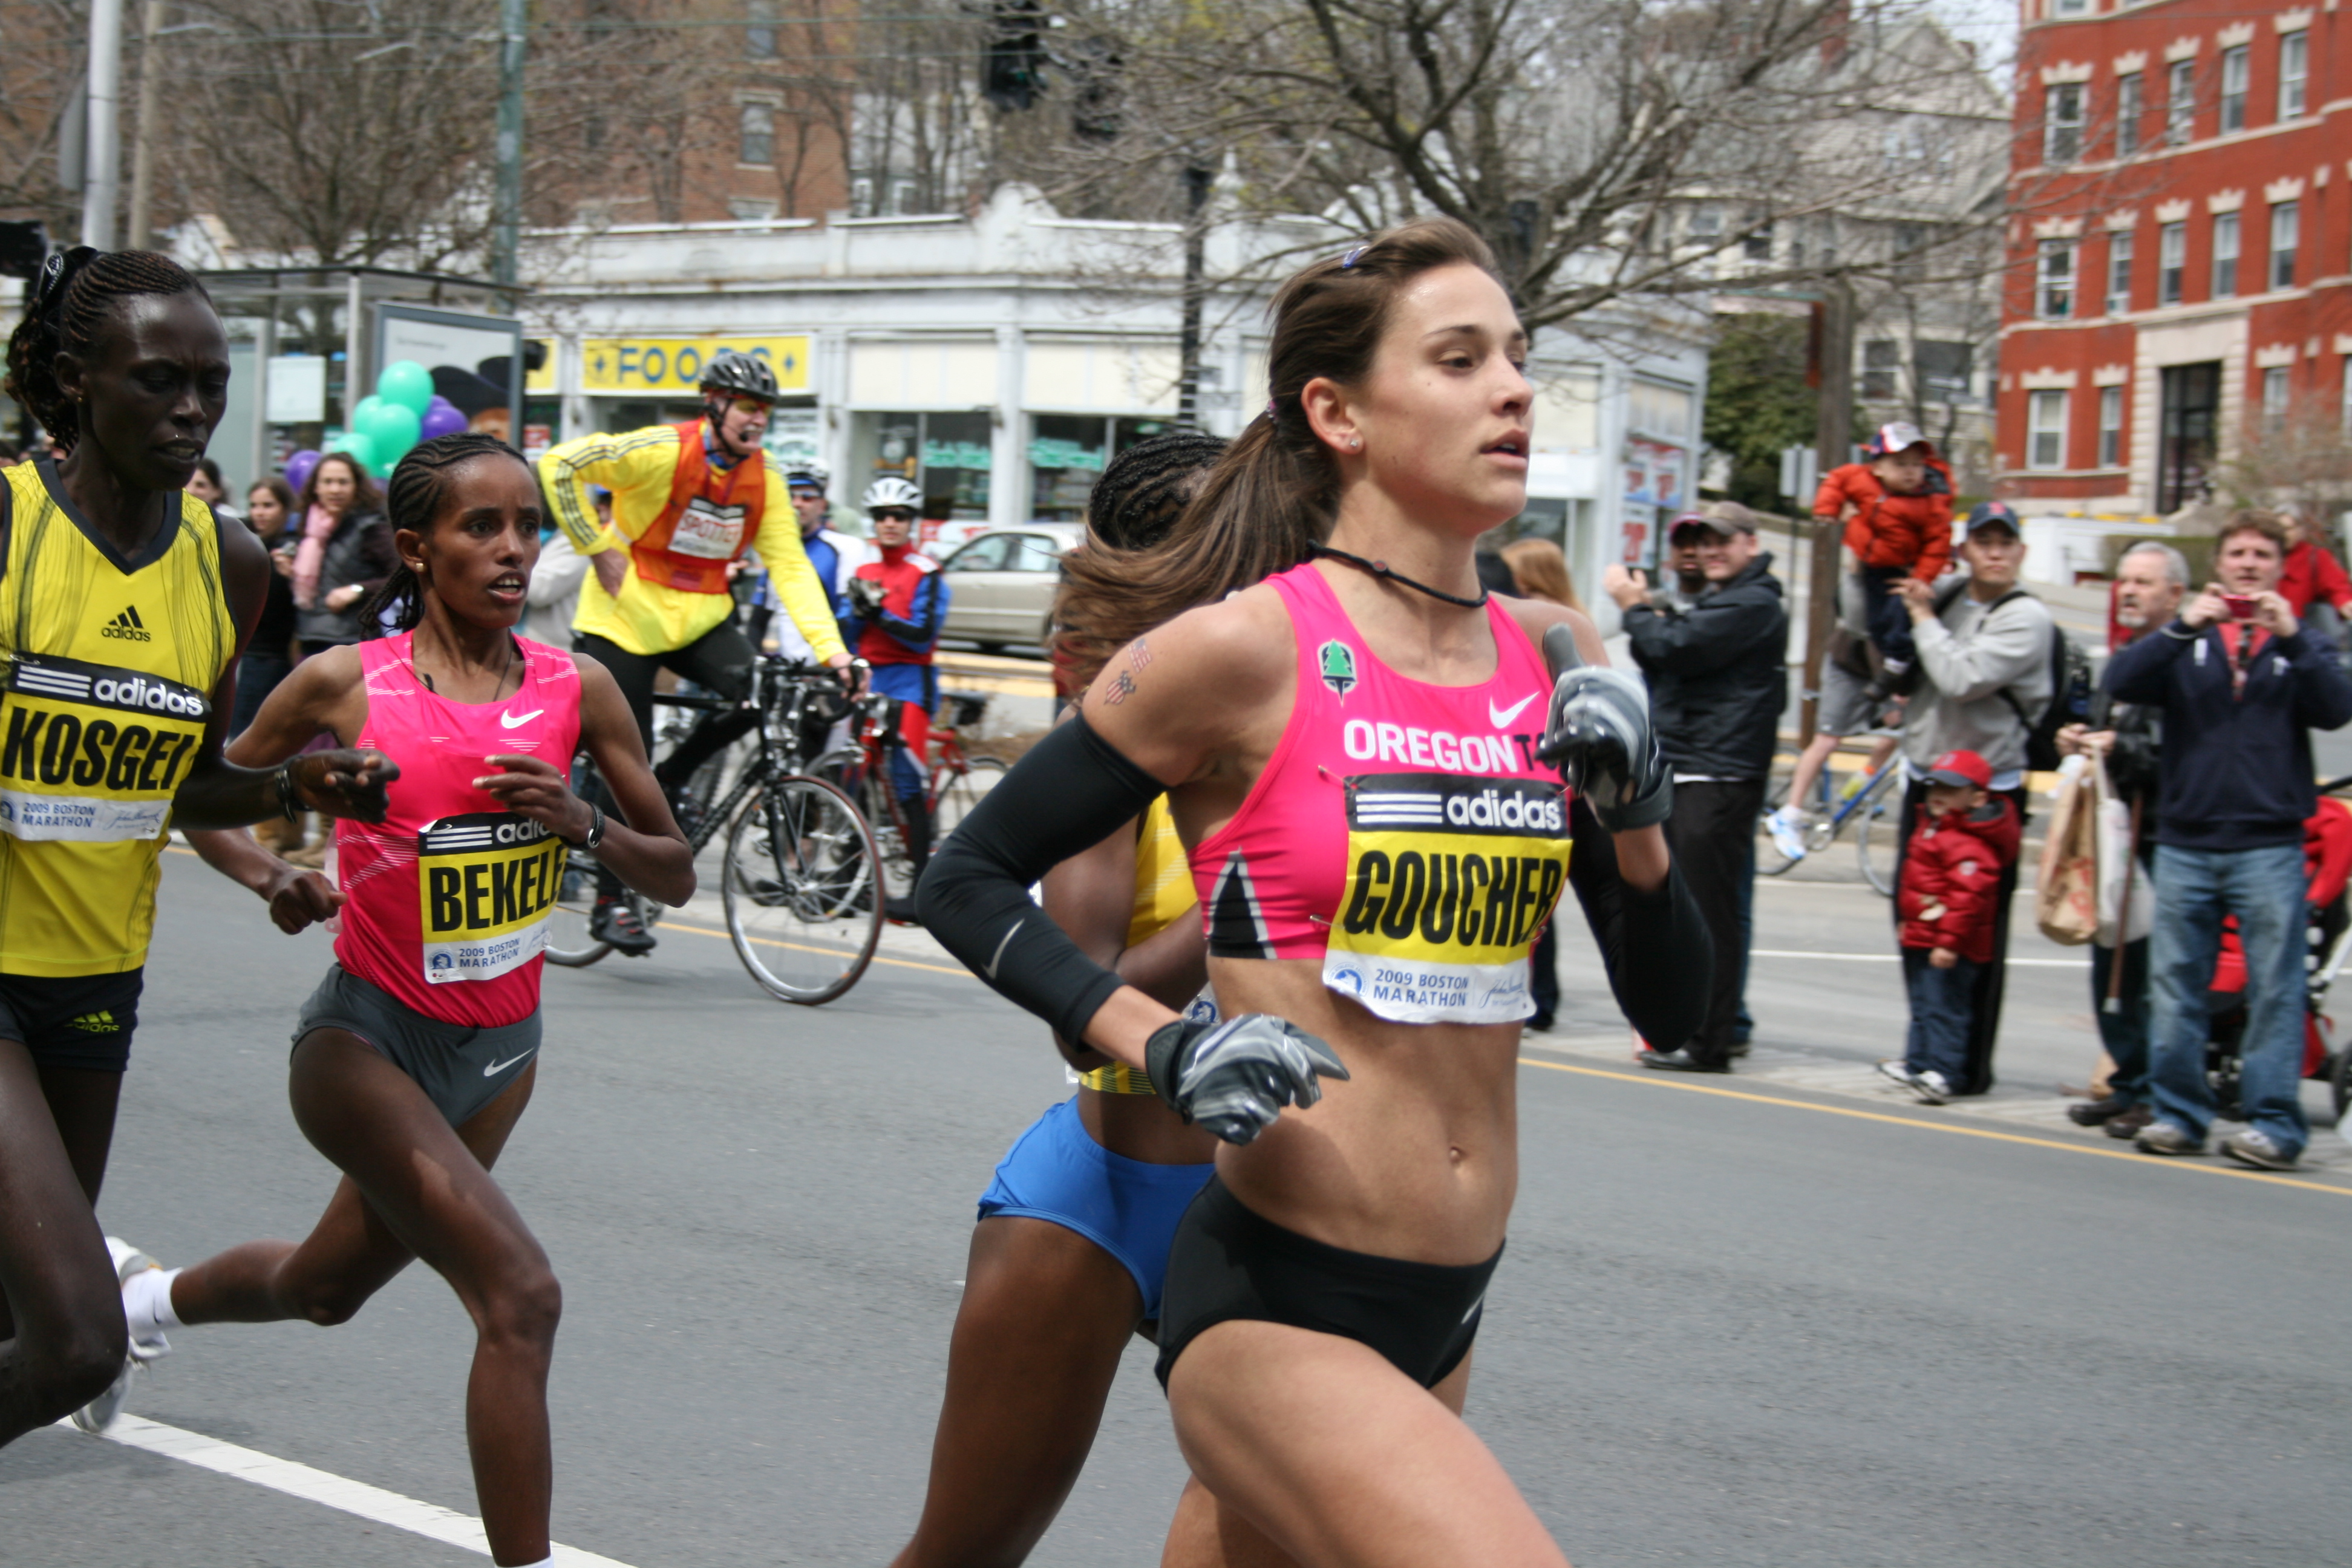 Sexy girls in a marathon, naked girls doing the move